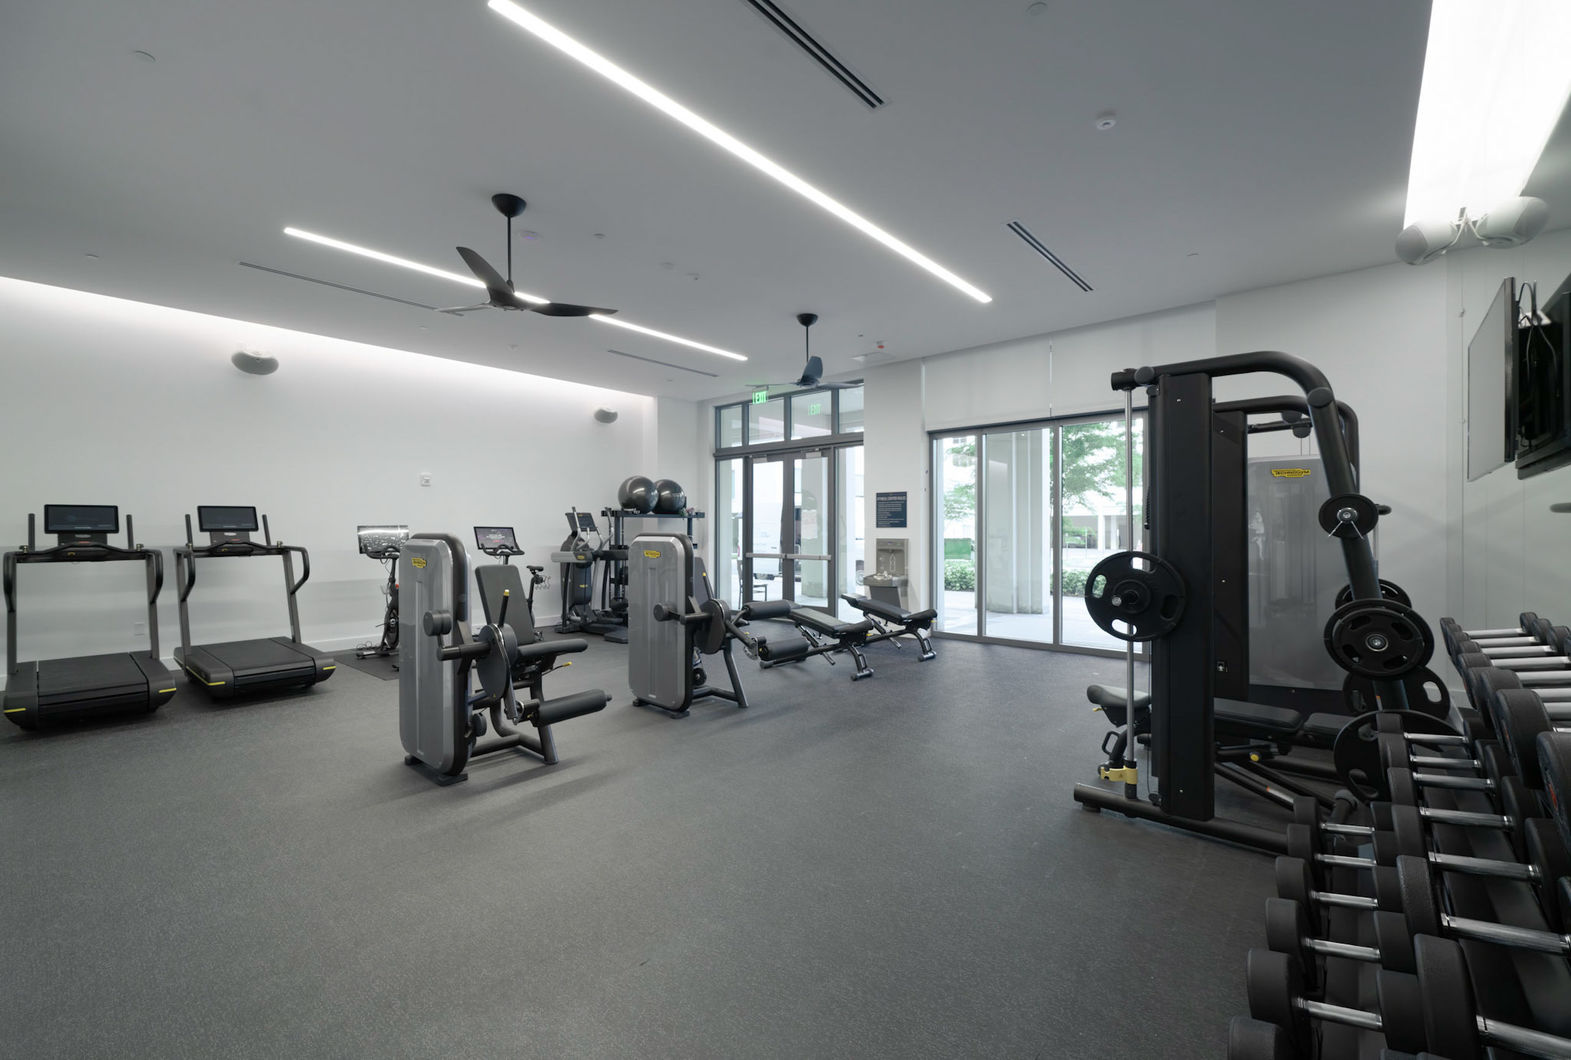 The Henry Gym